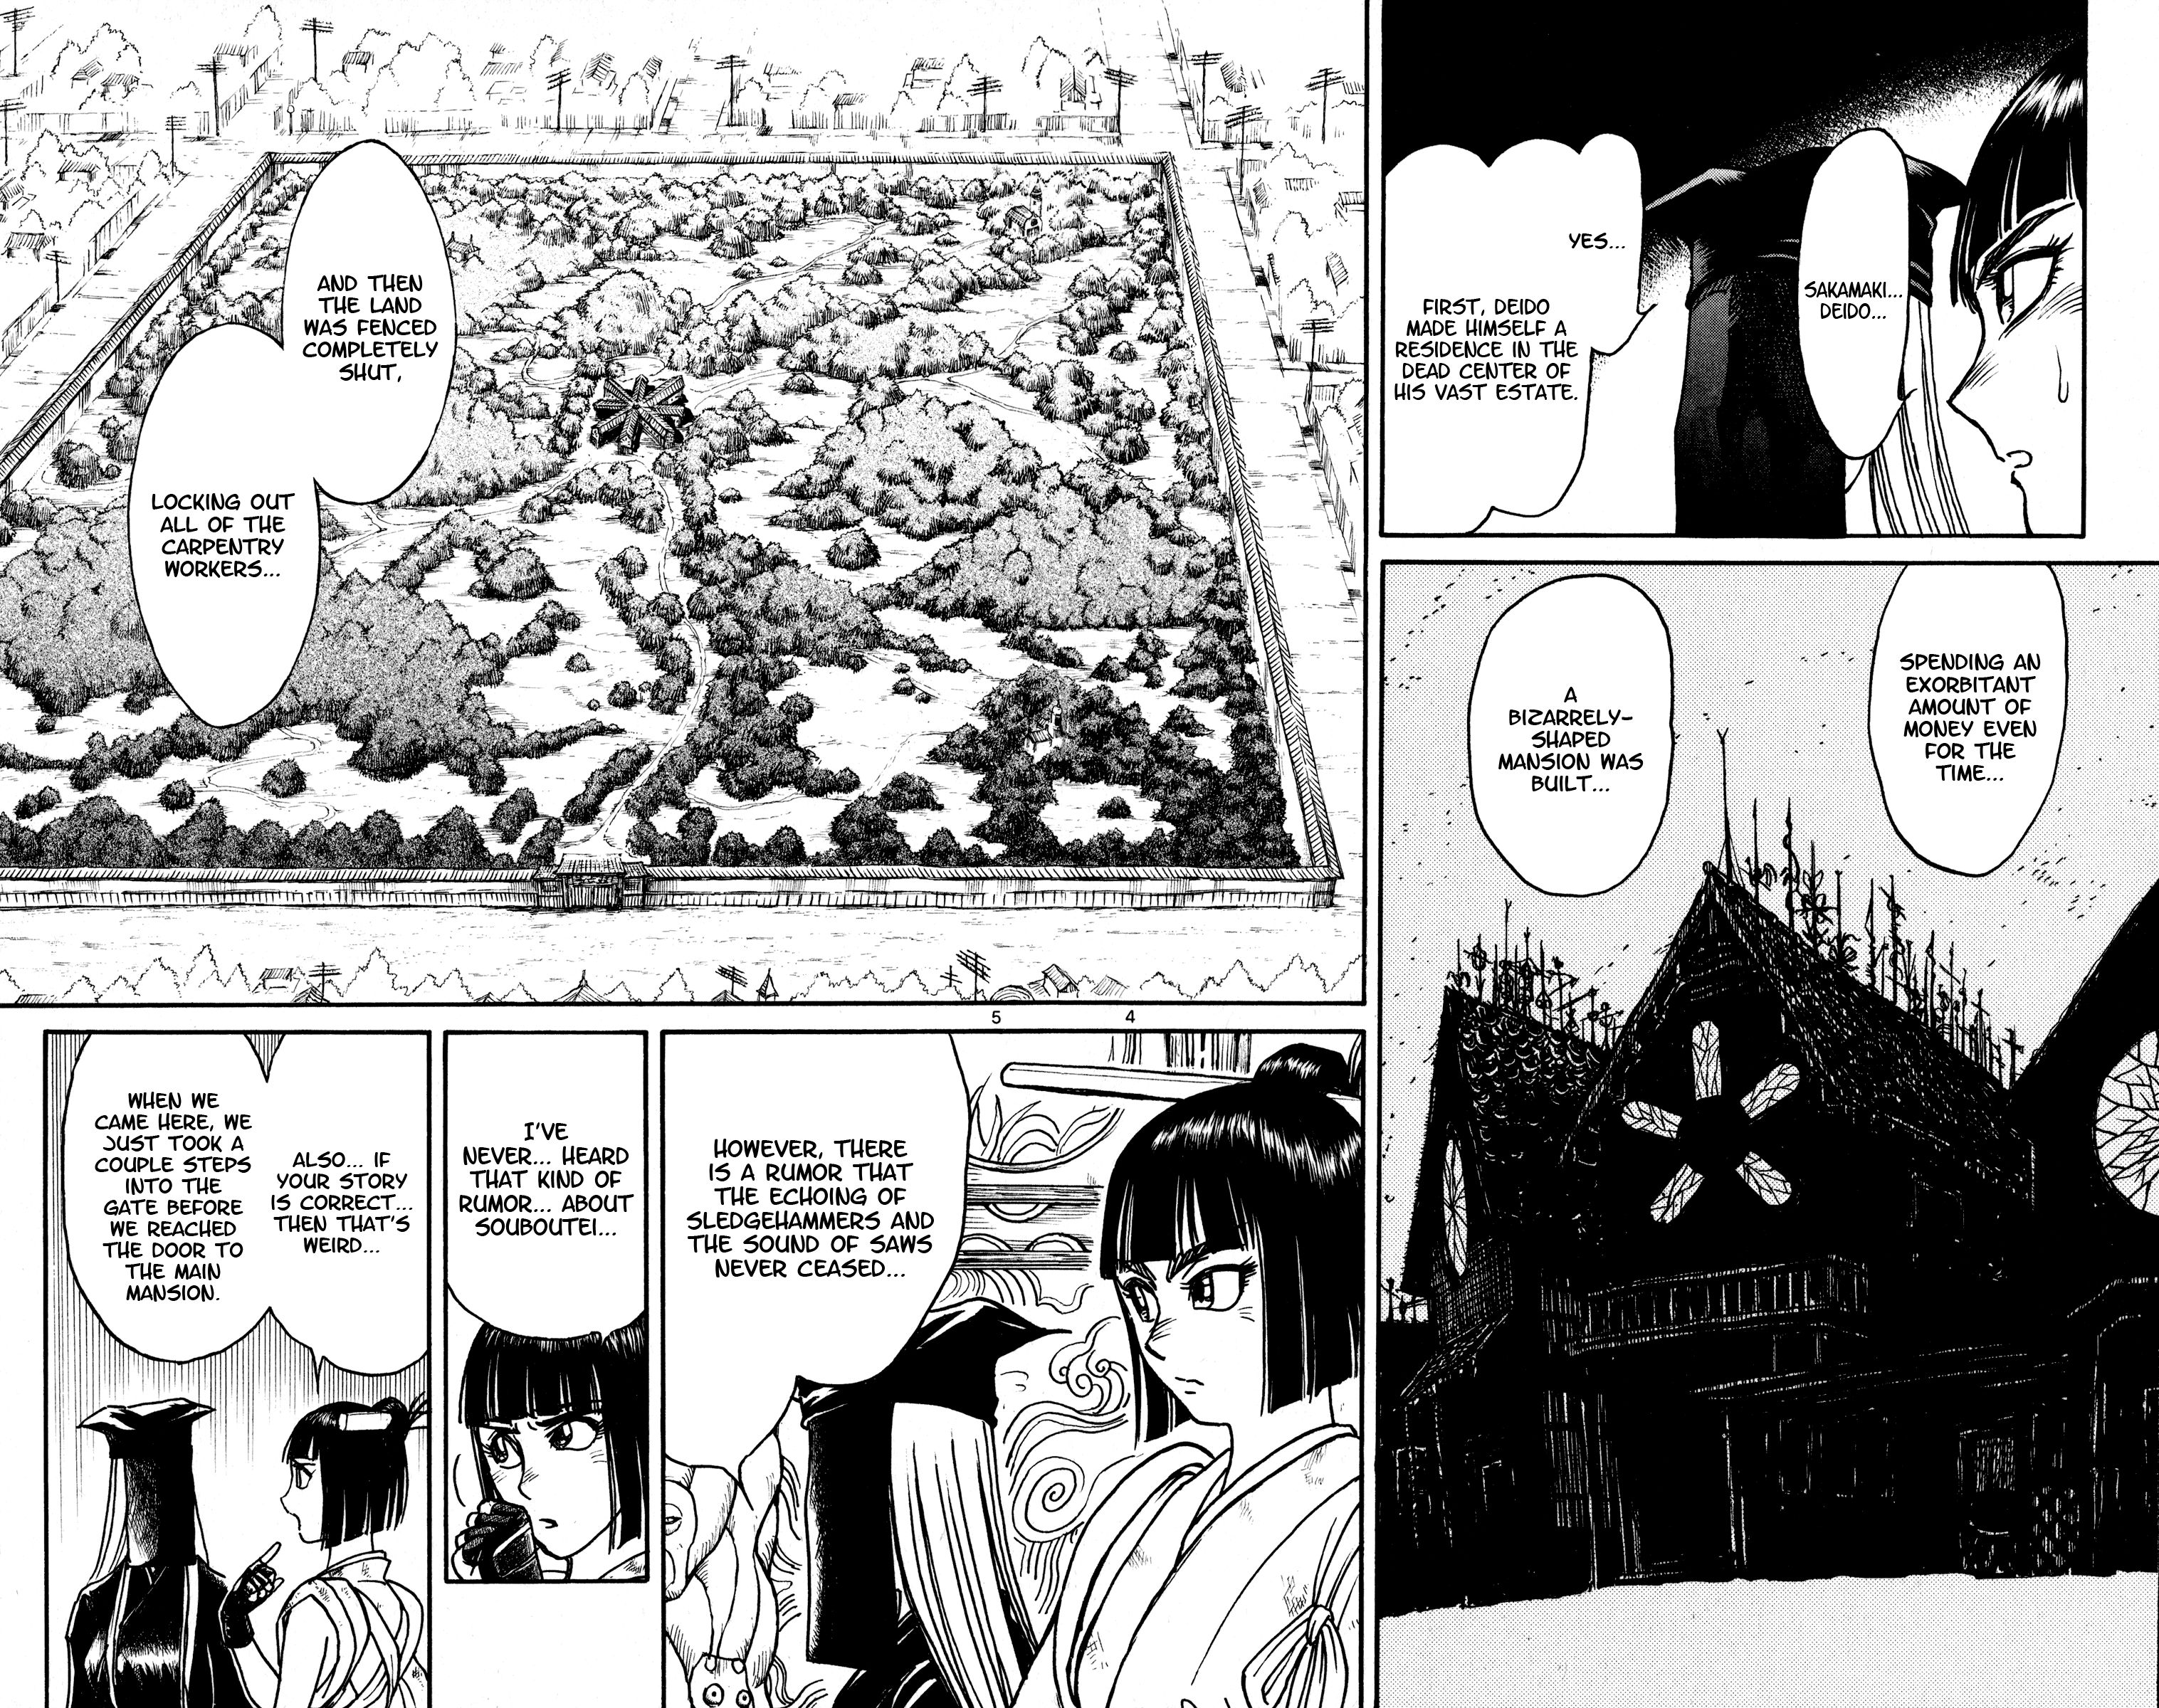 Souboutei Must be Destroyed - chapter 67 - #3